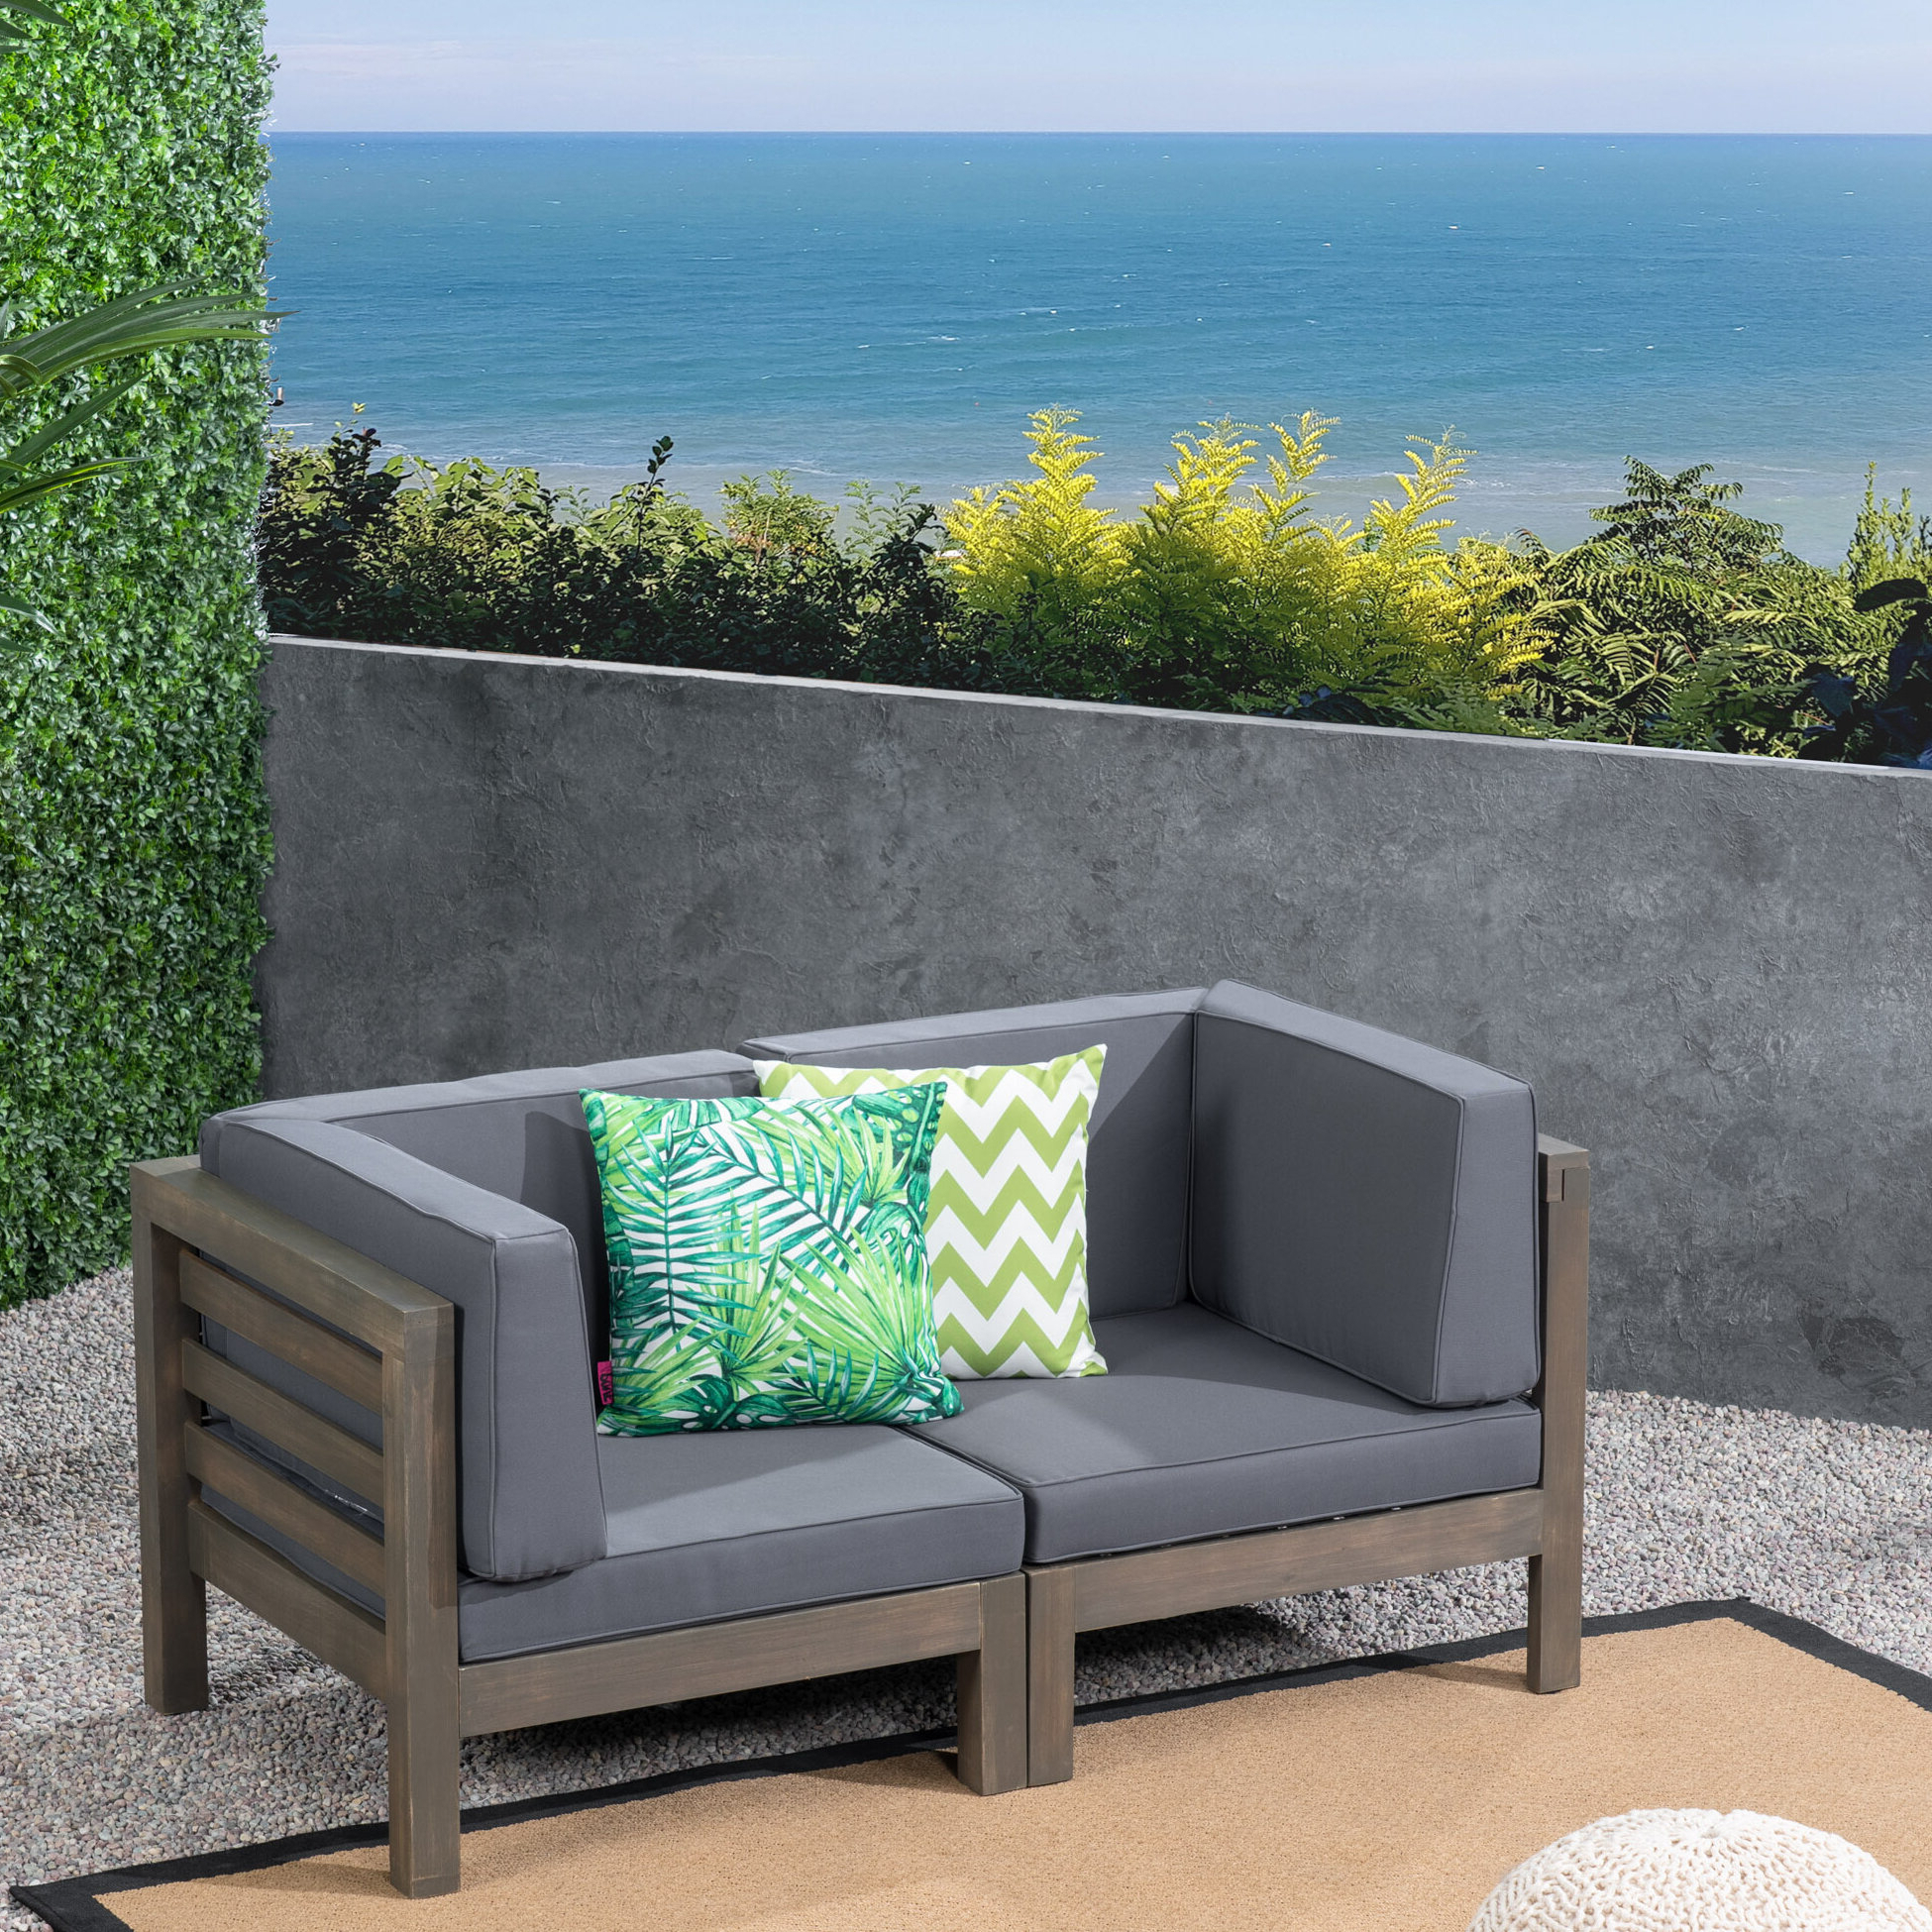 Seaham Loveseat With Cushions Within Widely Used Bullock Outdoor Wooden Loveseats With Cushions (View 17 of 20)